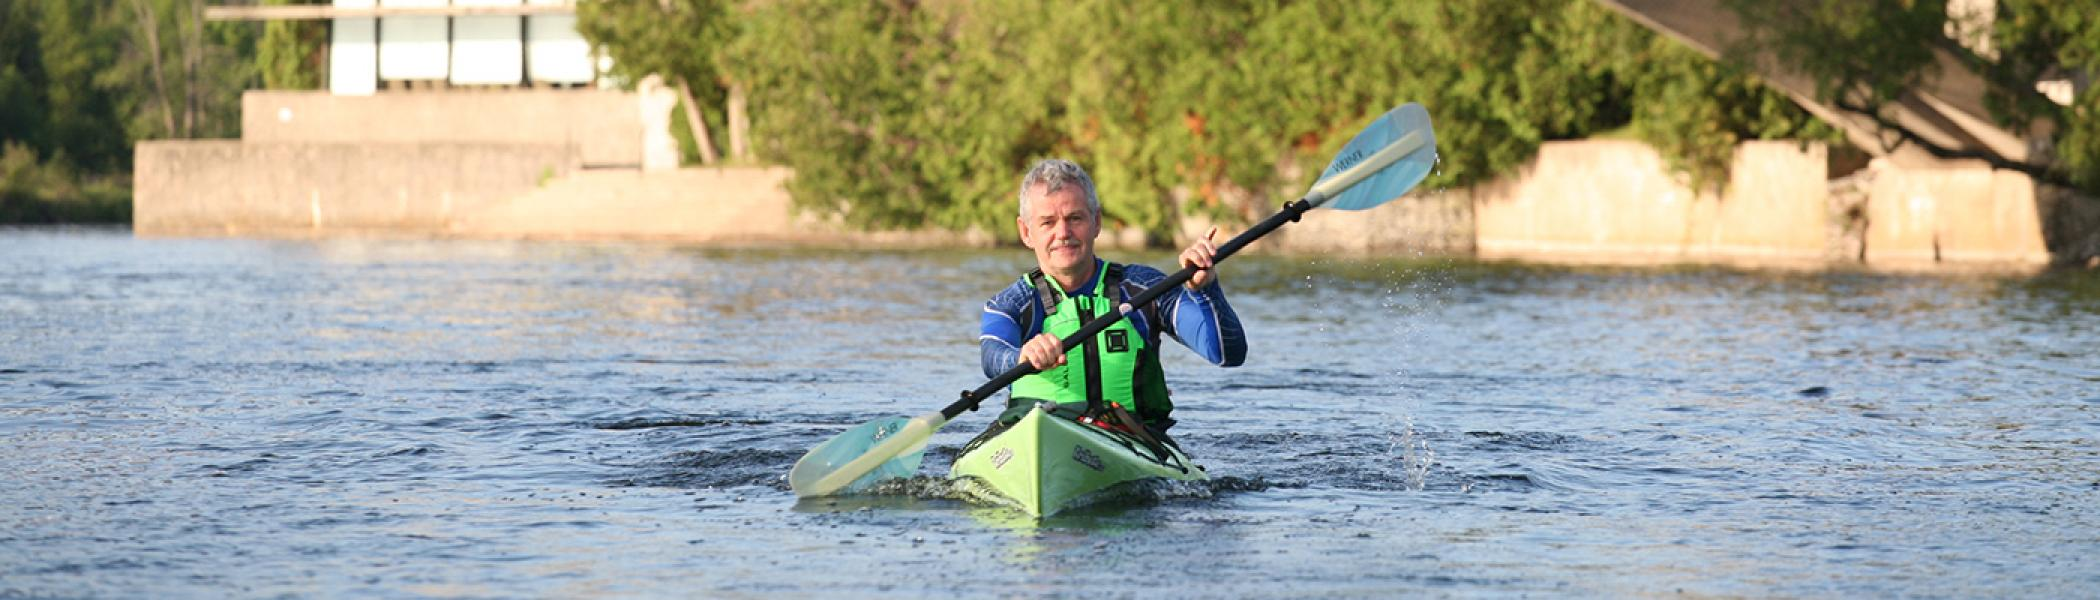 Dr. Leo Groarke kayaking on the Otonabee river in front of the Bata Library